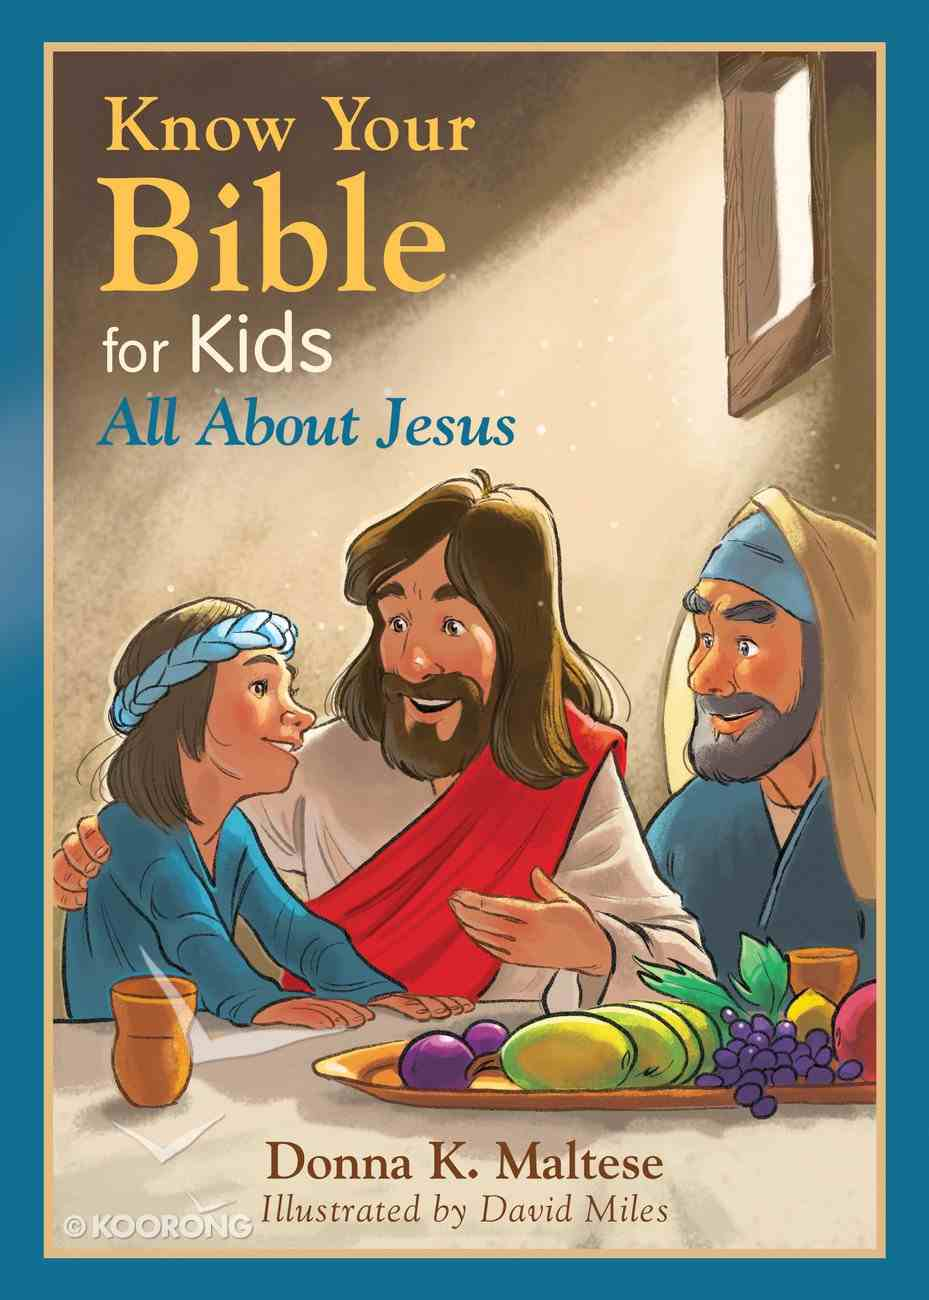 Know Your Bible For Kids: All About Jesus eBook